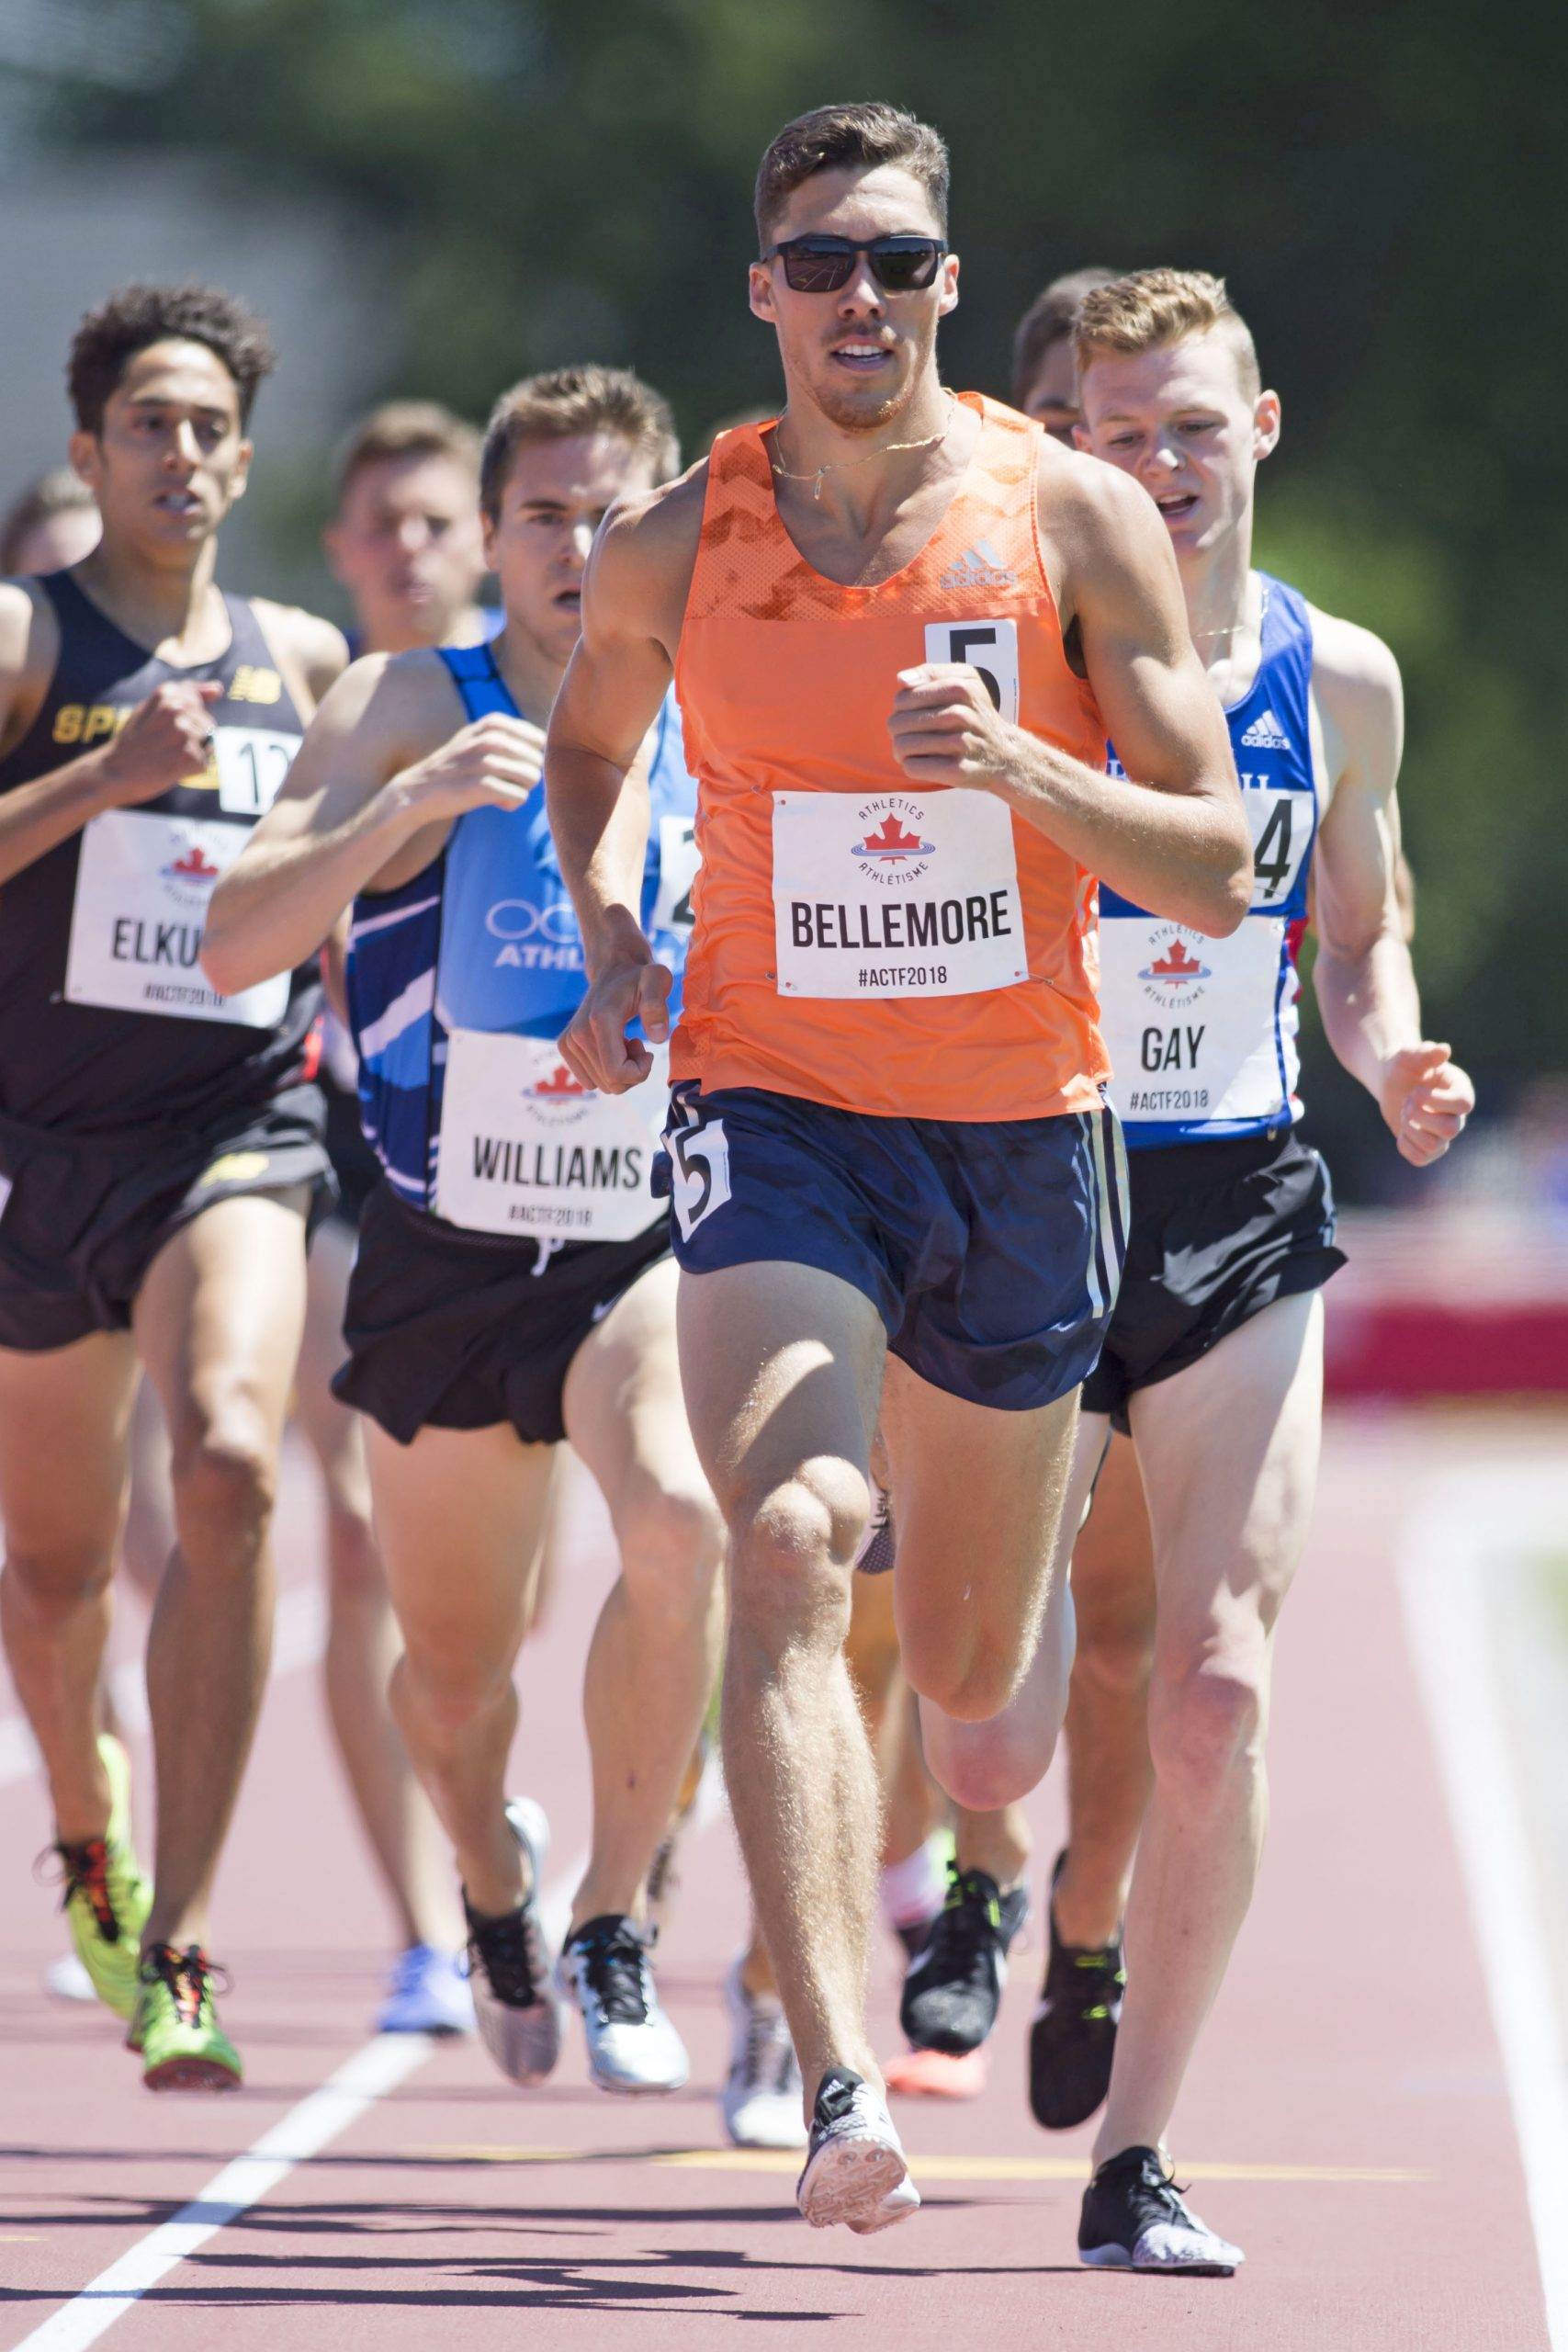 Record Runner disqualified for not just drink beer